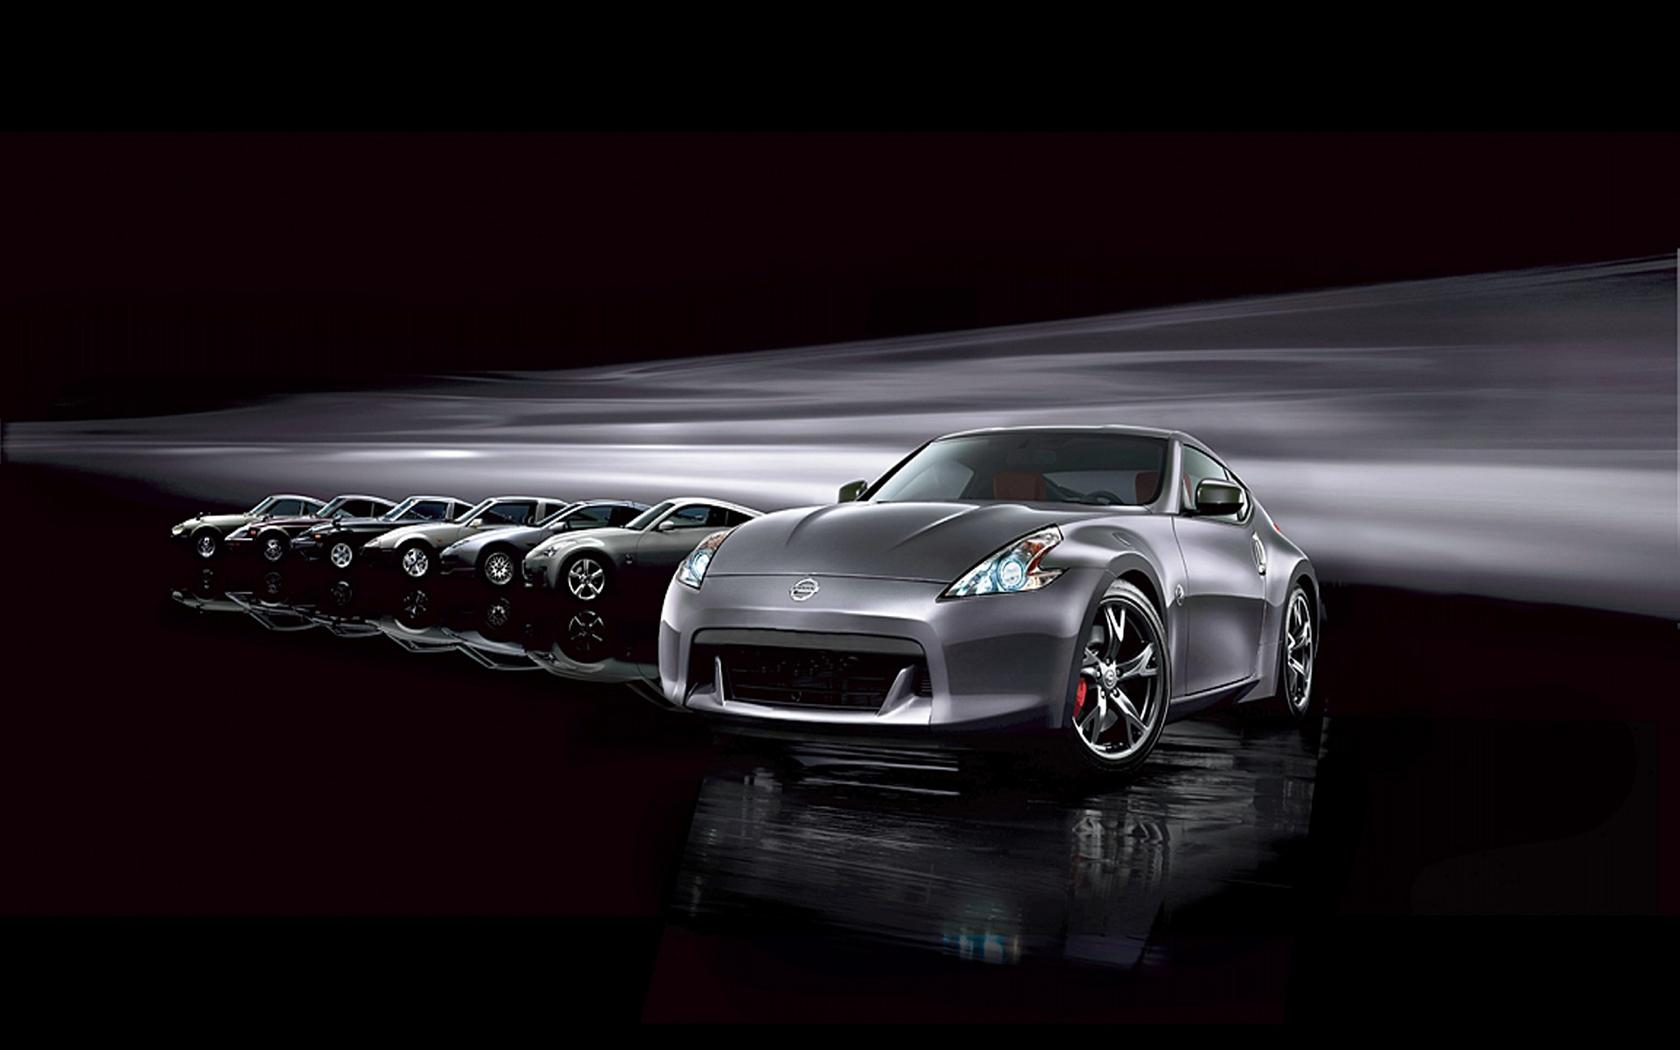 2010 nissan 370z 40th anniversary image https www. Black Bedroom Furniture Sets. Home Design Ideas